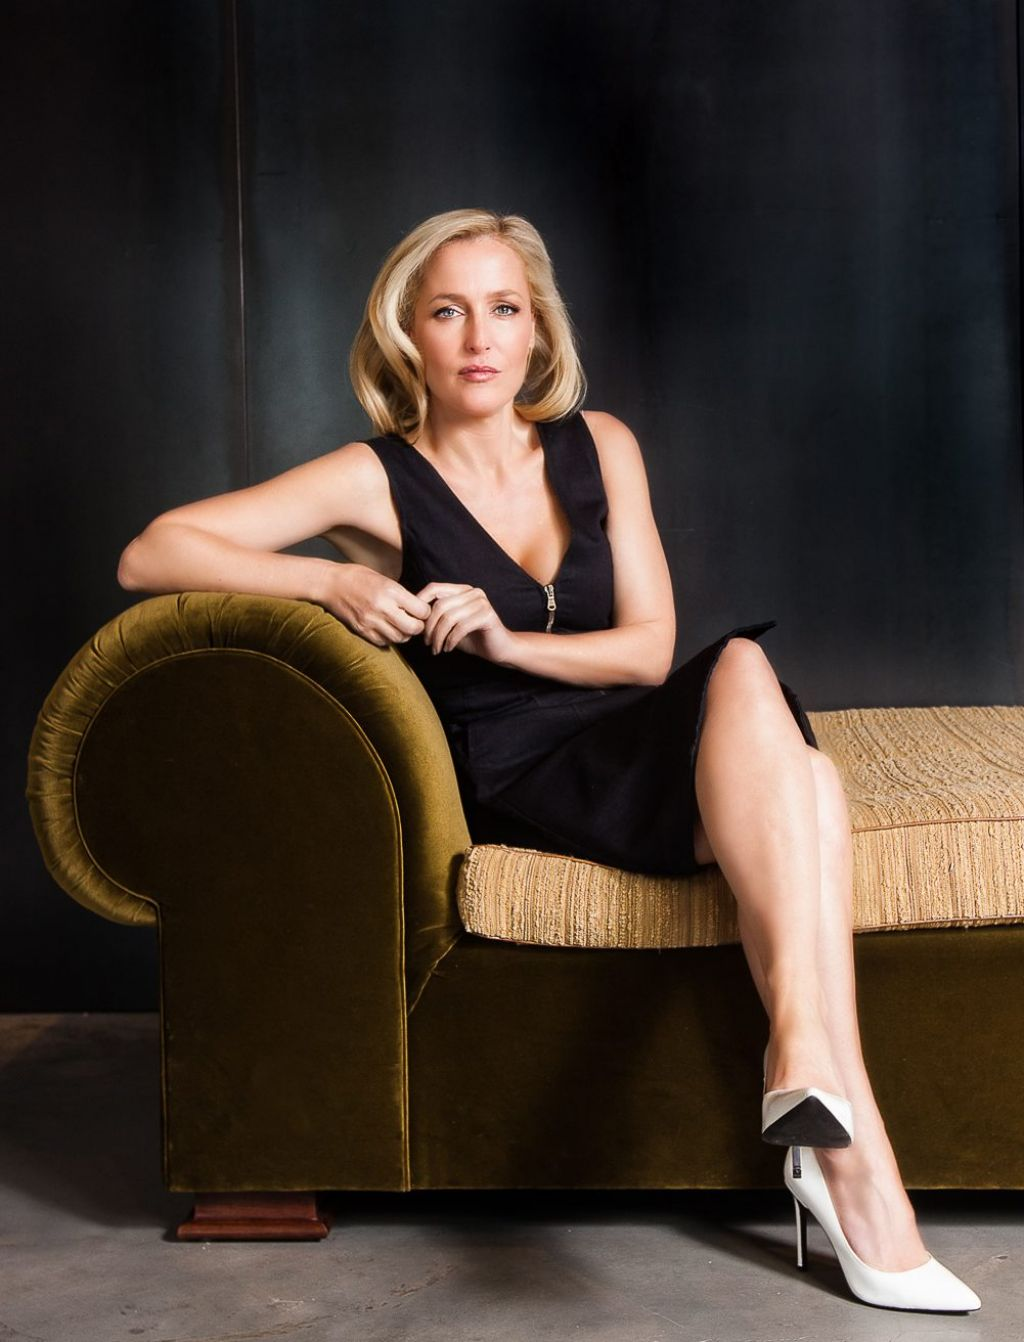 Gillian Anderson Nude - Hot Nude Celebrities Sexy Naked Pics